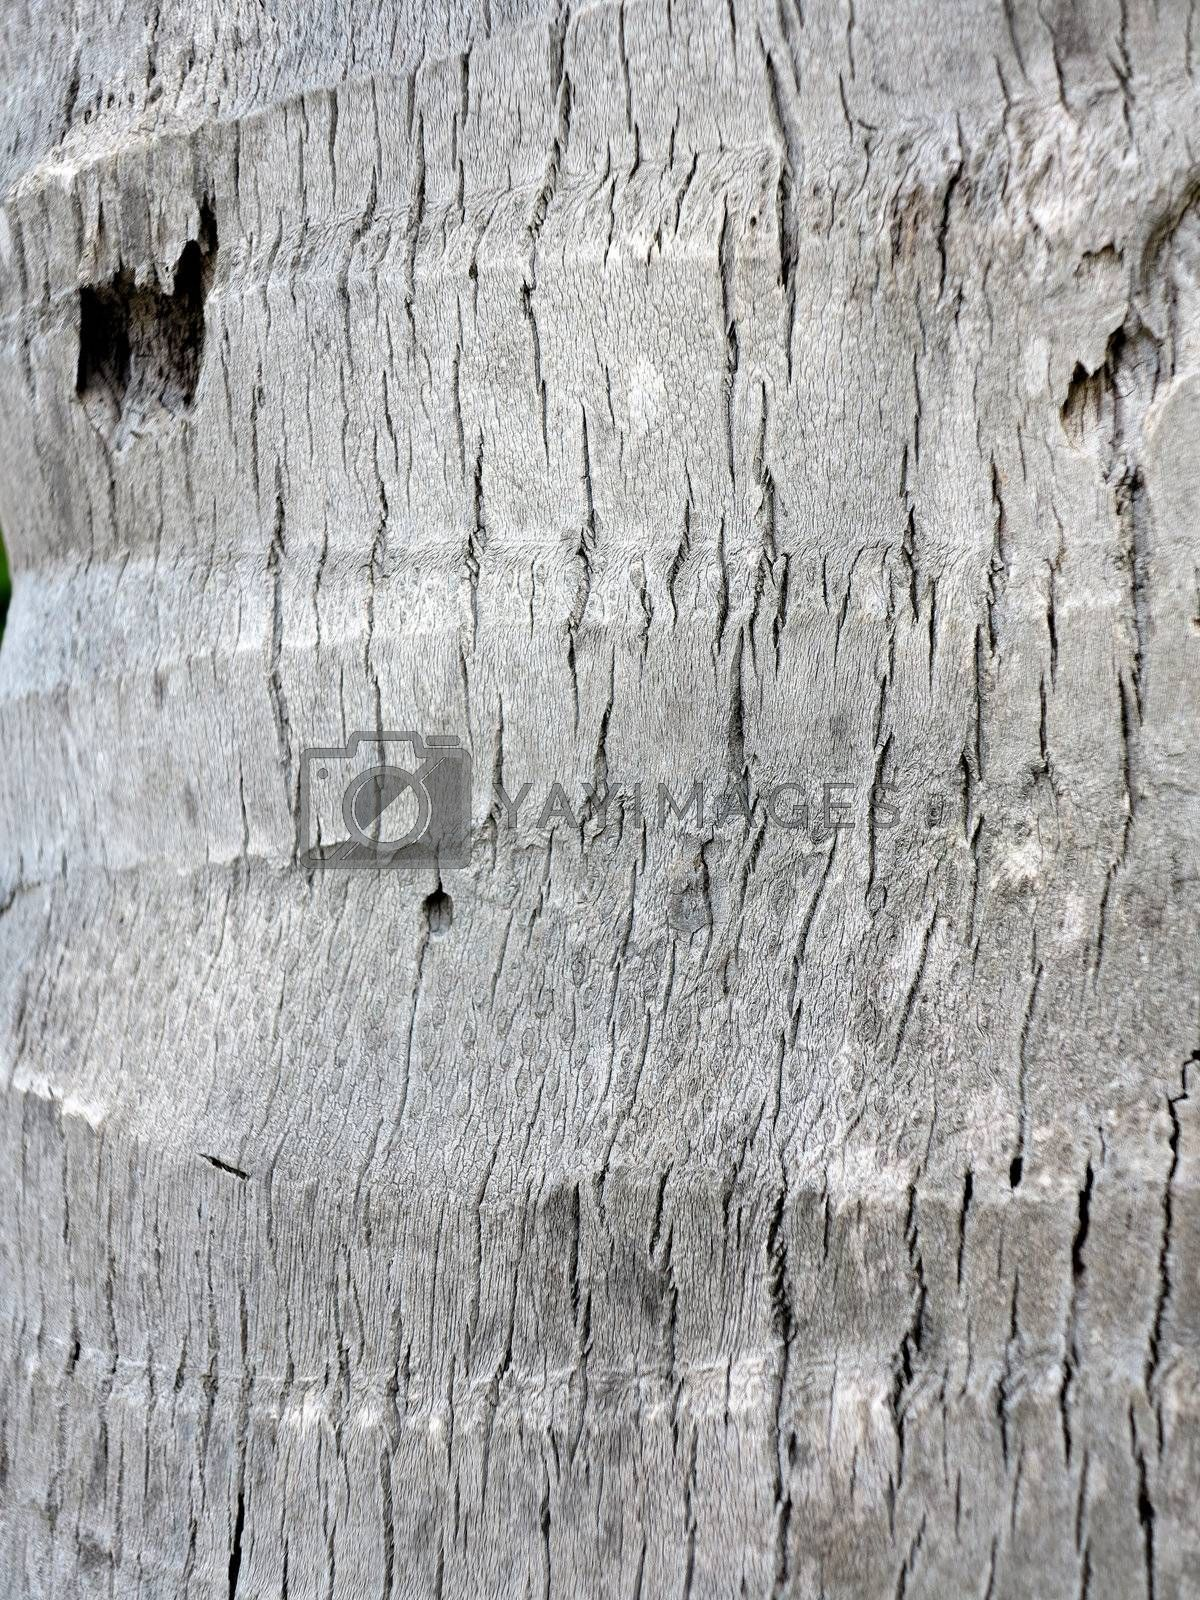 Coconut tree bark, textured by get4net